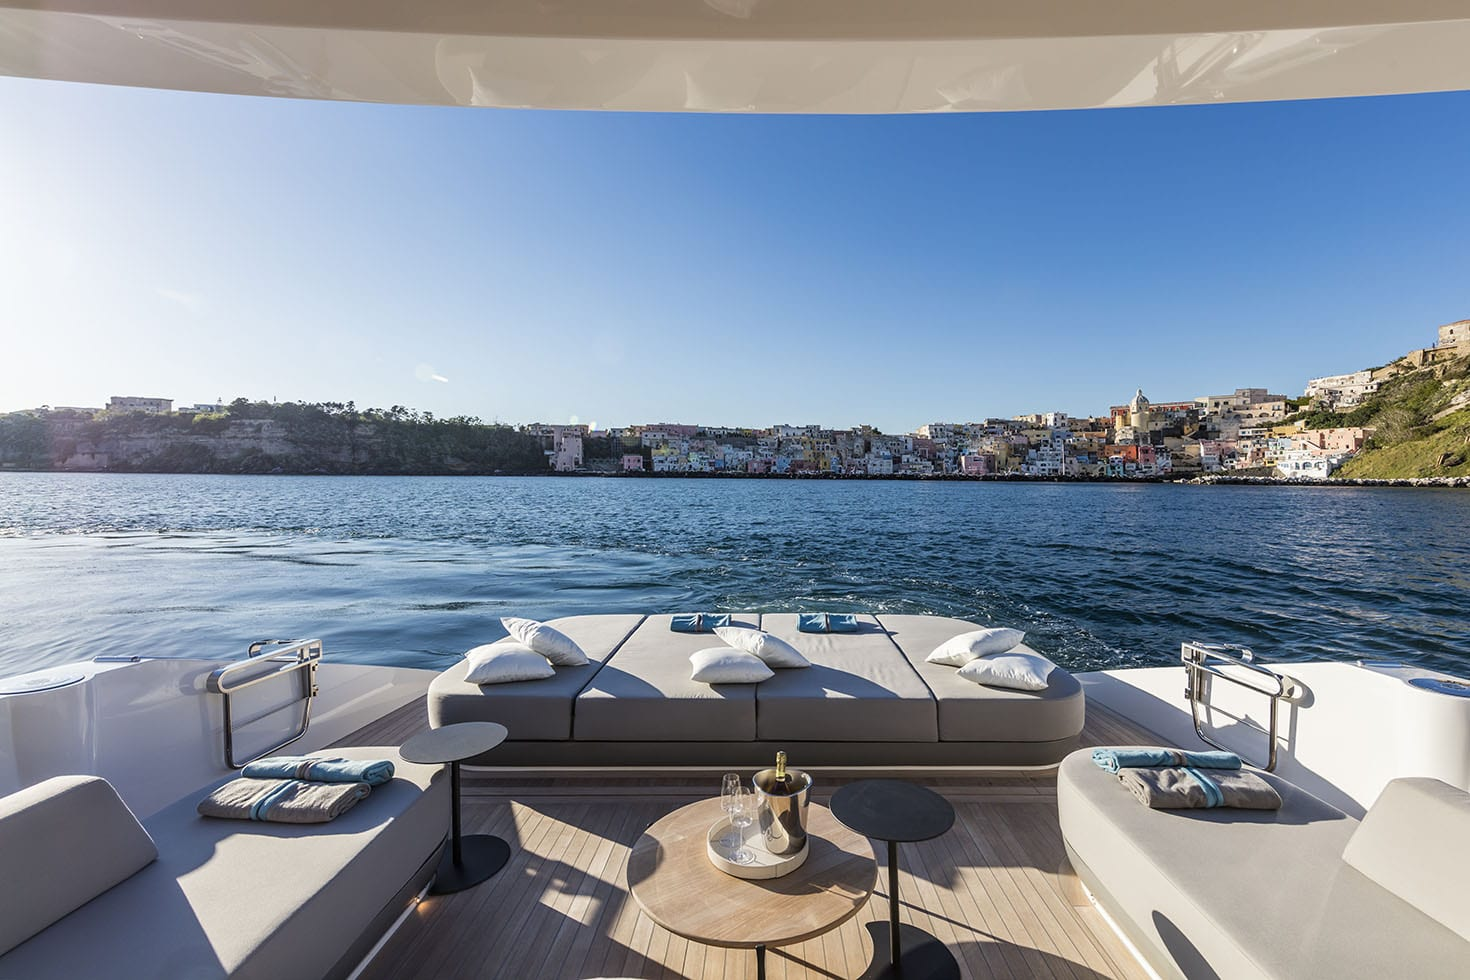 Aft Deck With Sunbathing Area